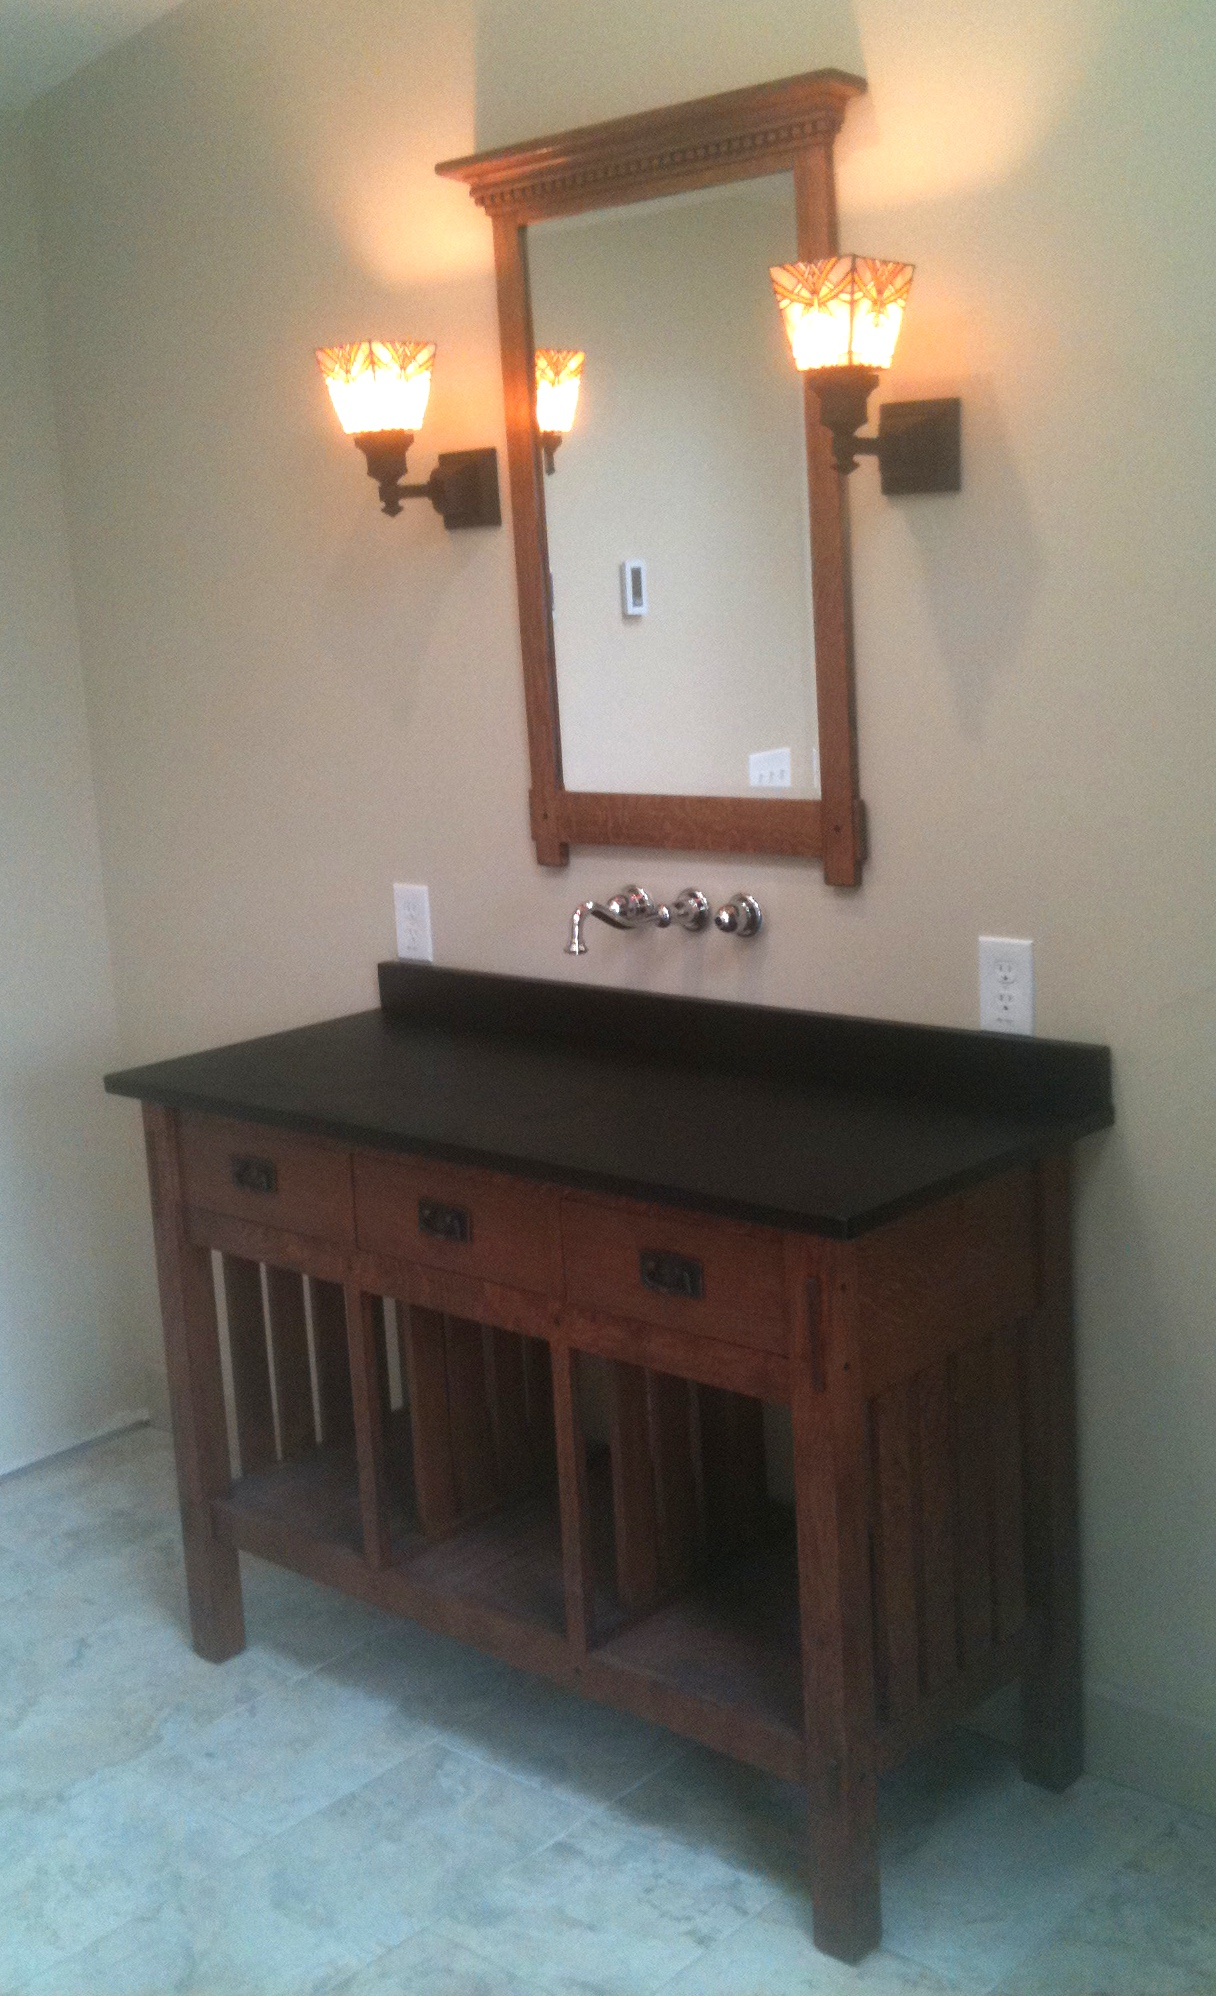 Bathroom Vanity Plans: Woodwork Wood Engineering Projects PDF Plans